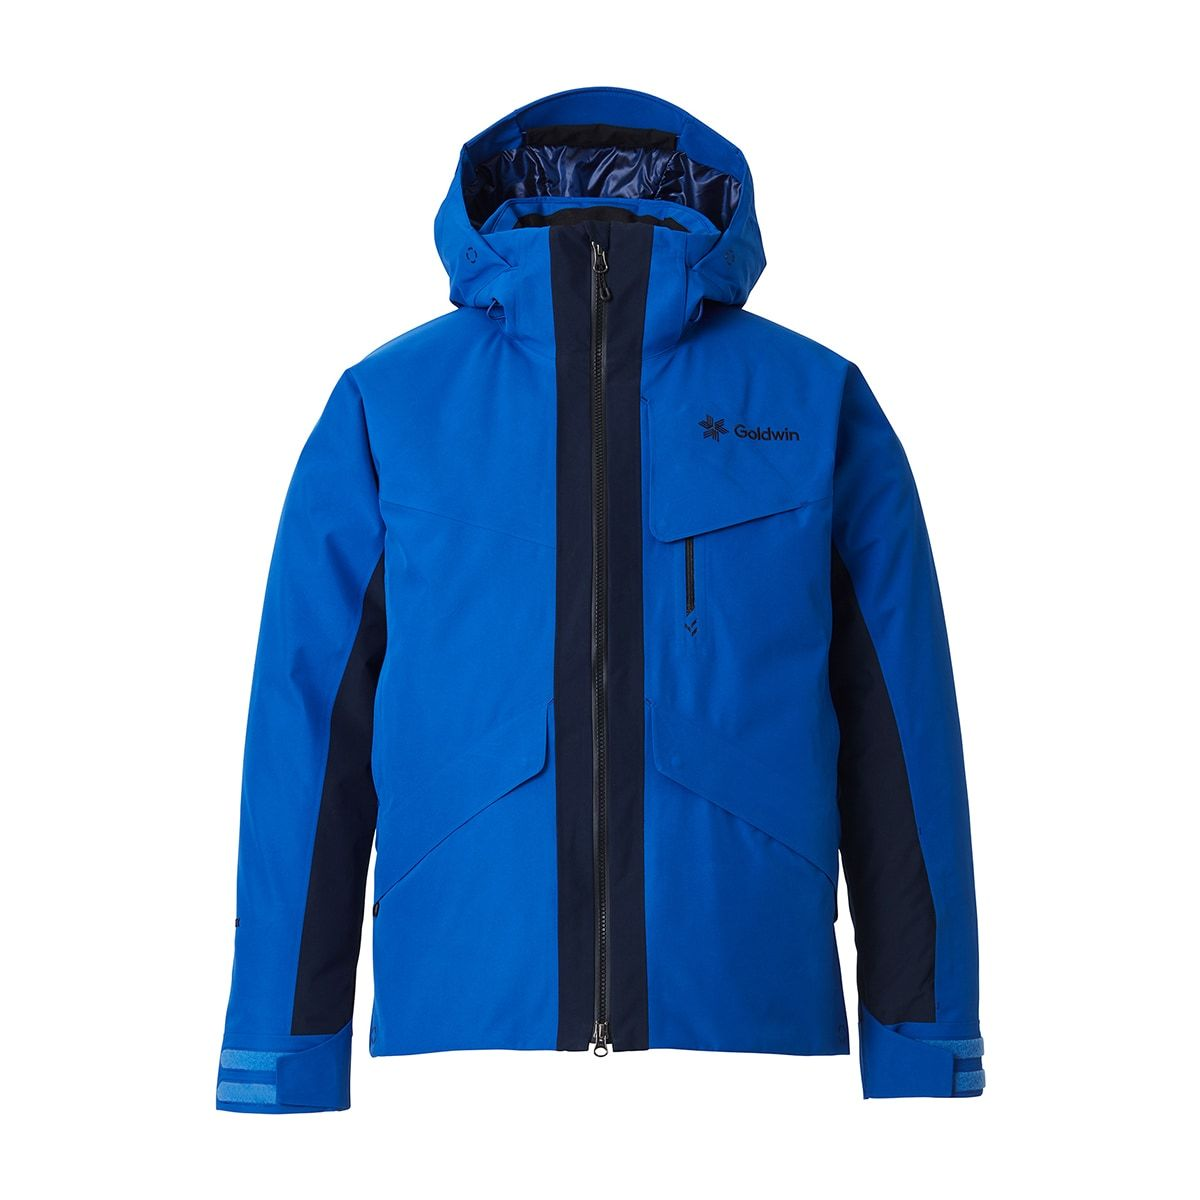 COLOR: LP